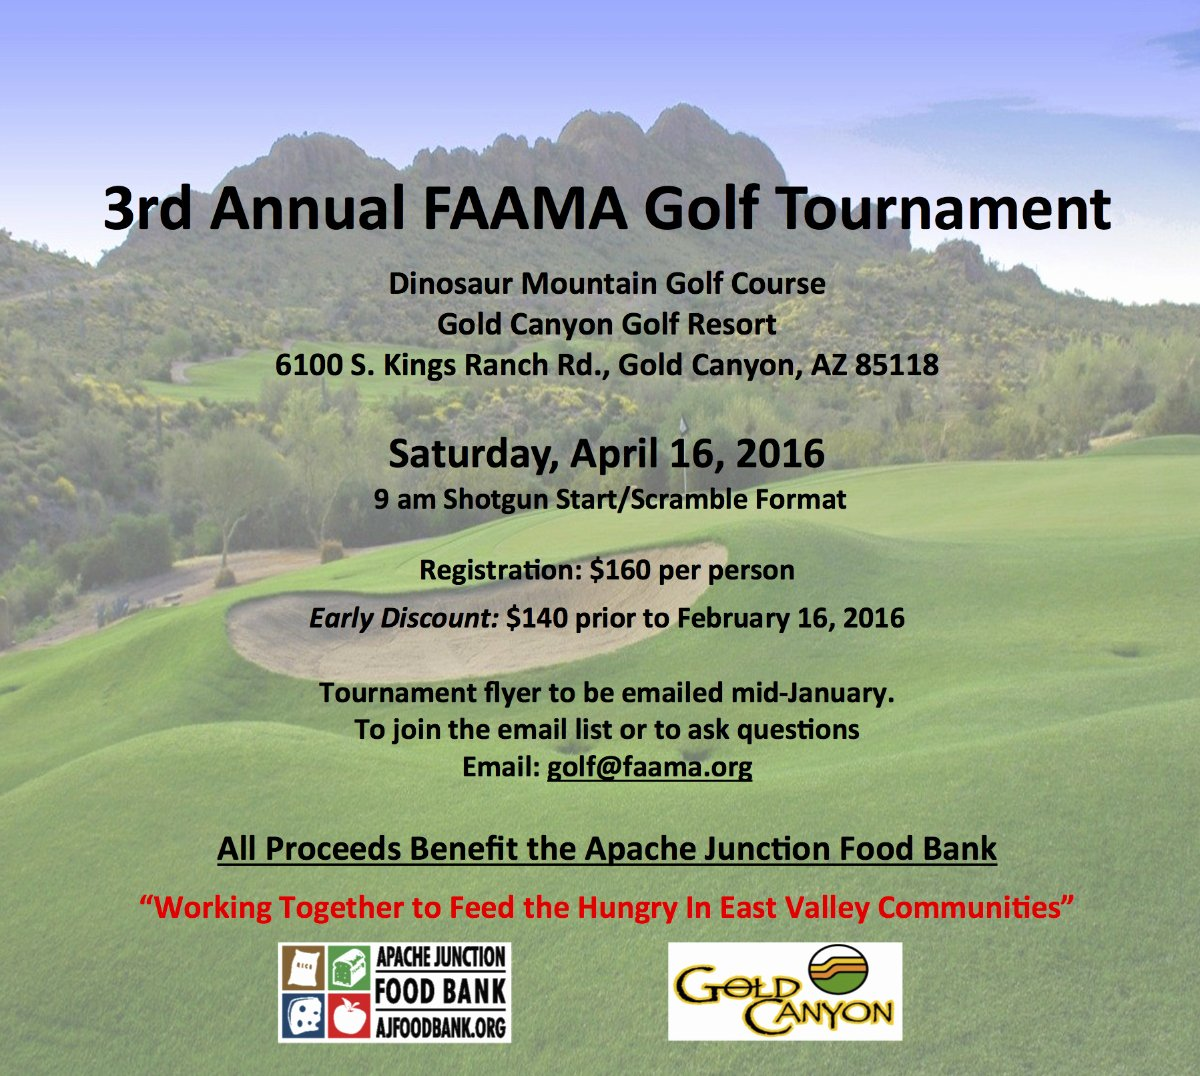 Charity Golf tournament Flyer Unique Save the Date 2016 Faama Charity Golf tournament – Faa Managers association